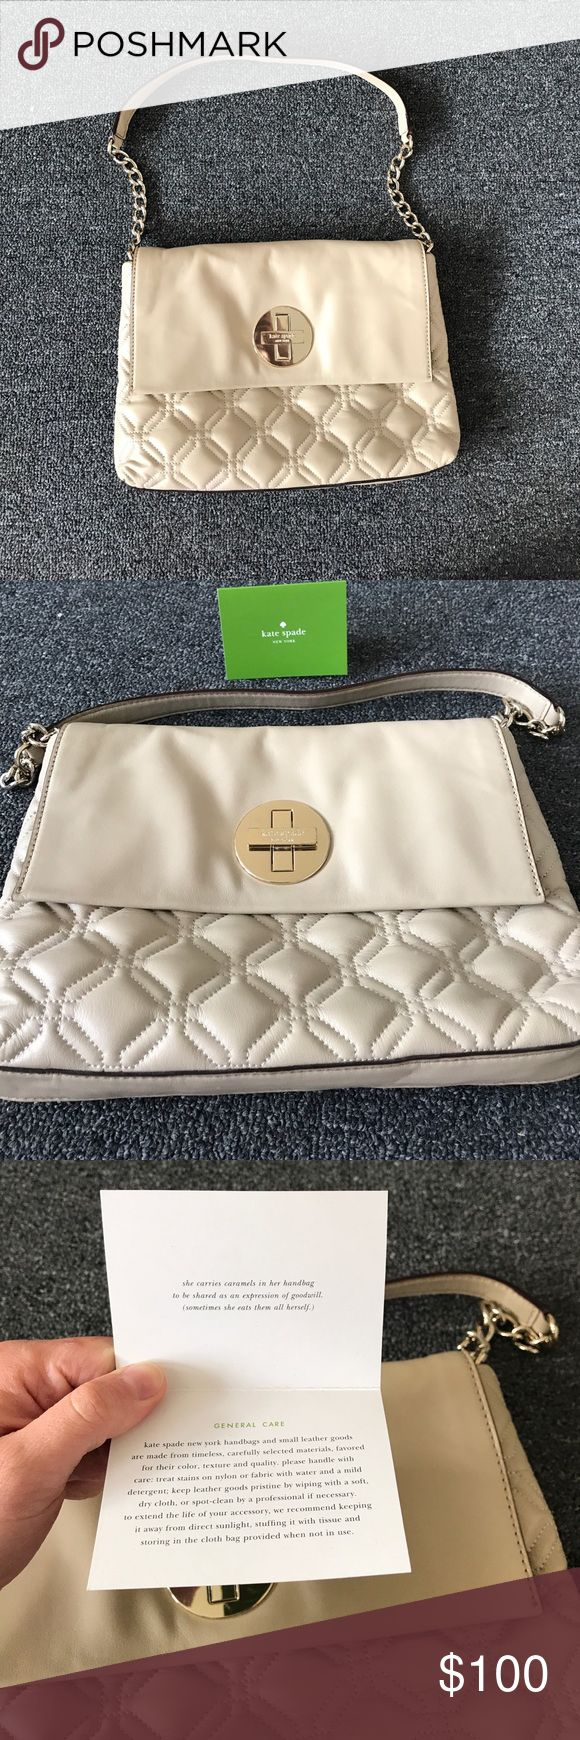 Kate Spade tan quilted shoulder bag Tan Kate spade quilted shoulder bag with light gold hardware, chain and leather strap with gold logo closure. Black and white polka dot interior with two interior pockets and one interior zipper pocket. kate spade Bags Shoulder Bags